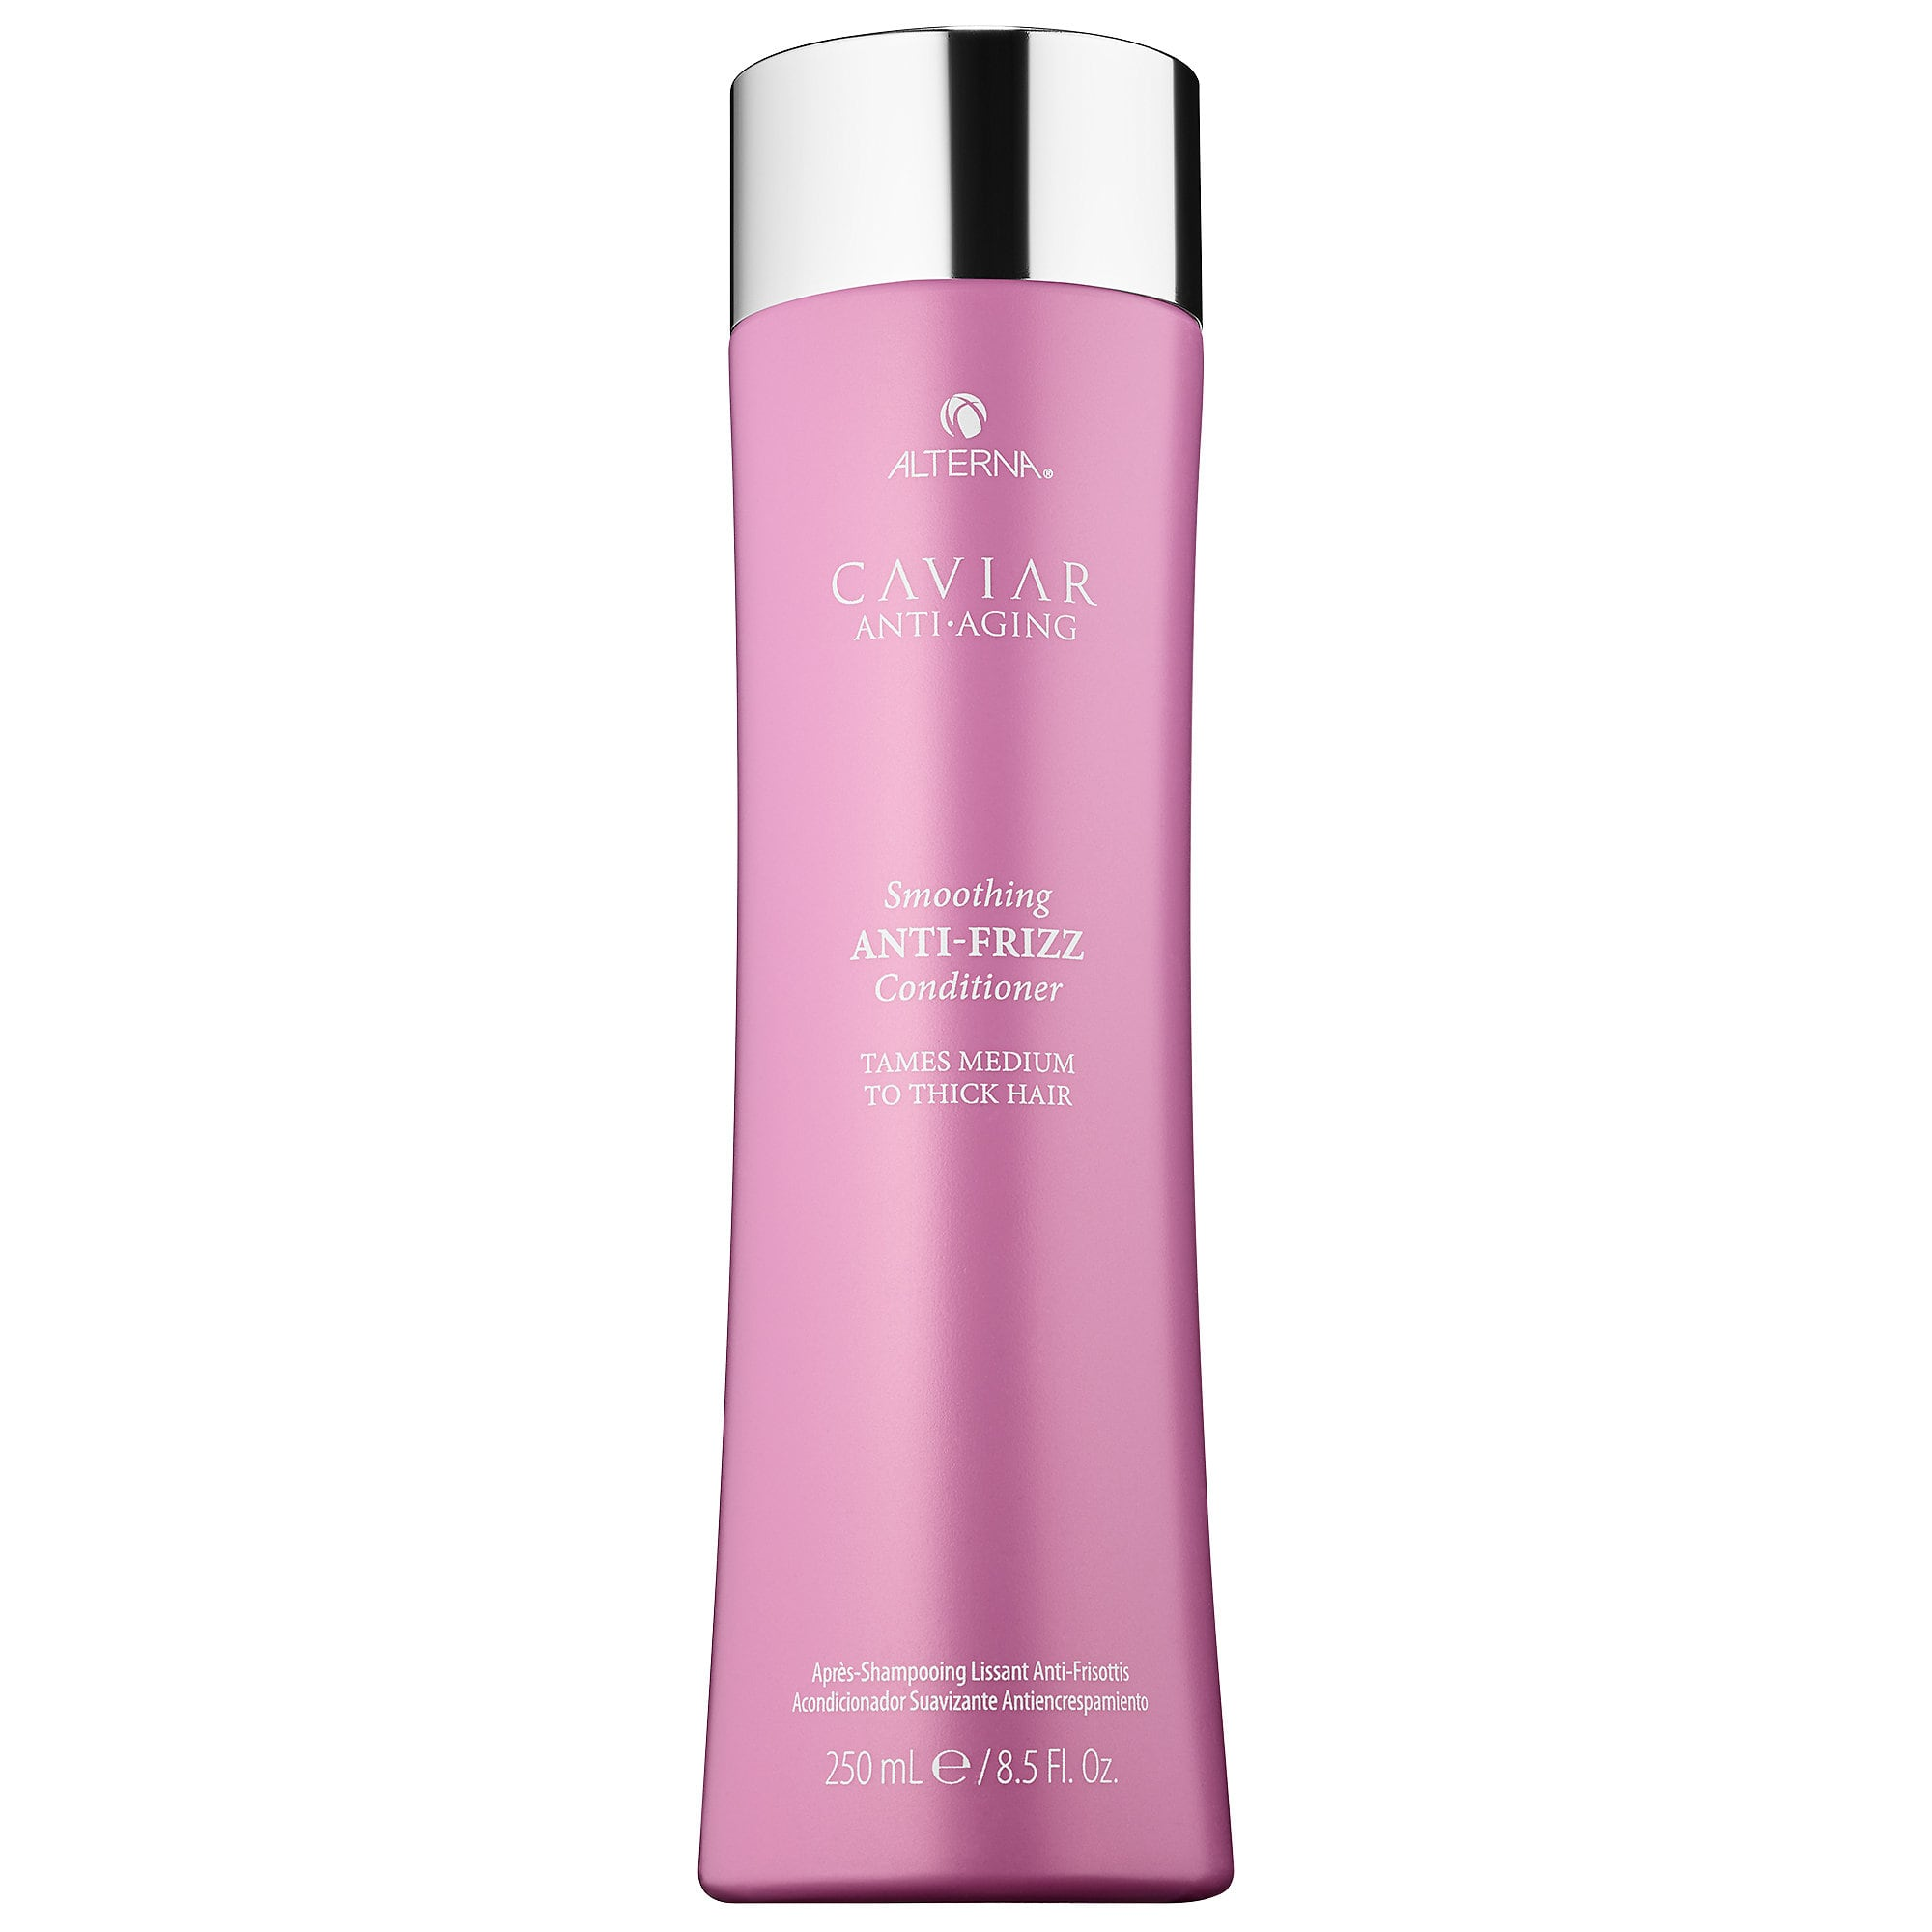 CAVIAR Anti-Aging® Smoothing Anti-Frizz Conditioner